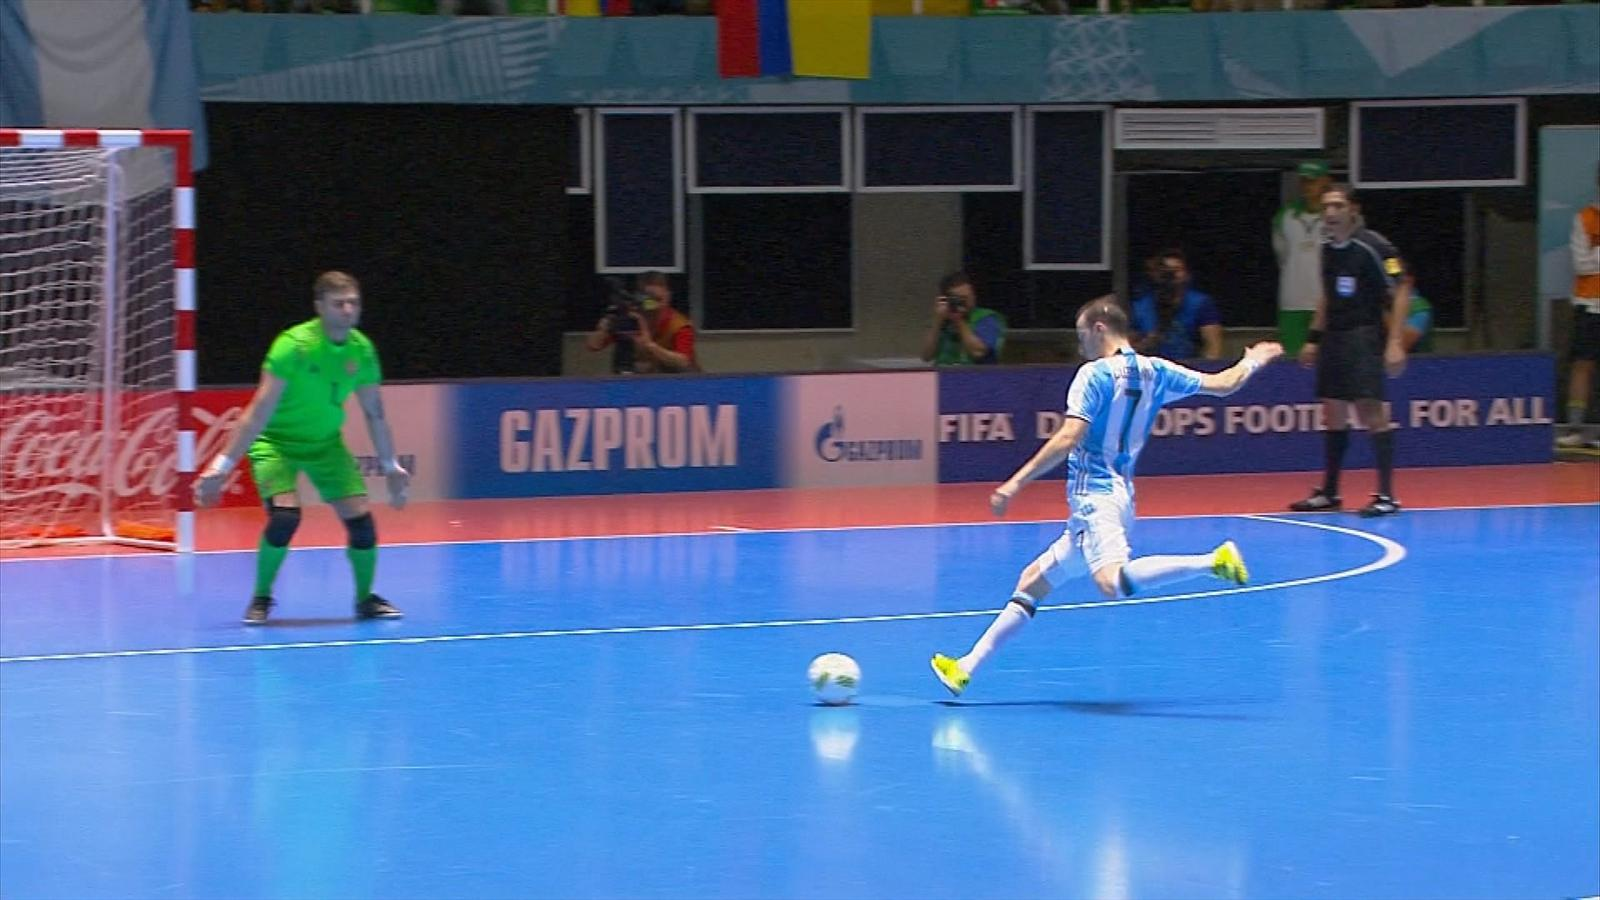 VIDEO - Argentina overcome Russia to claim Futsal World Cup - Video Eurosport